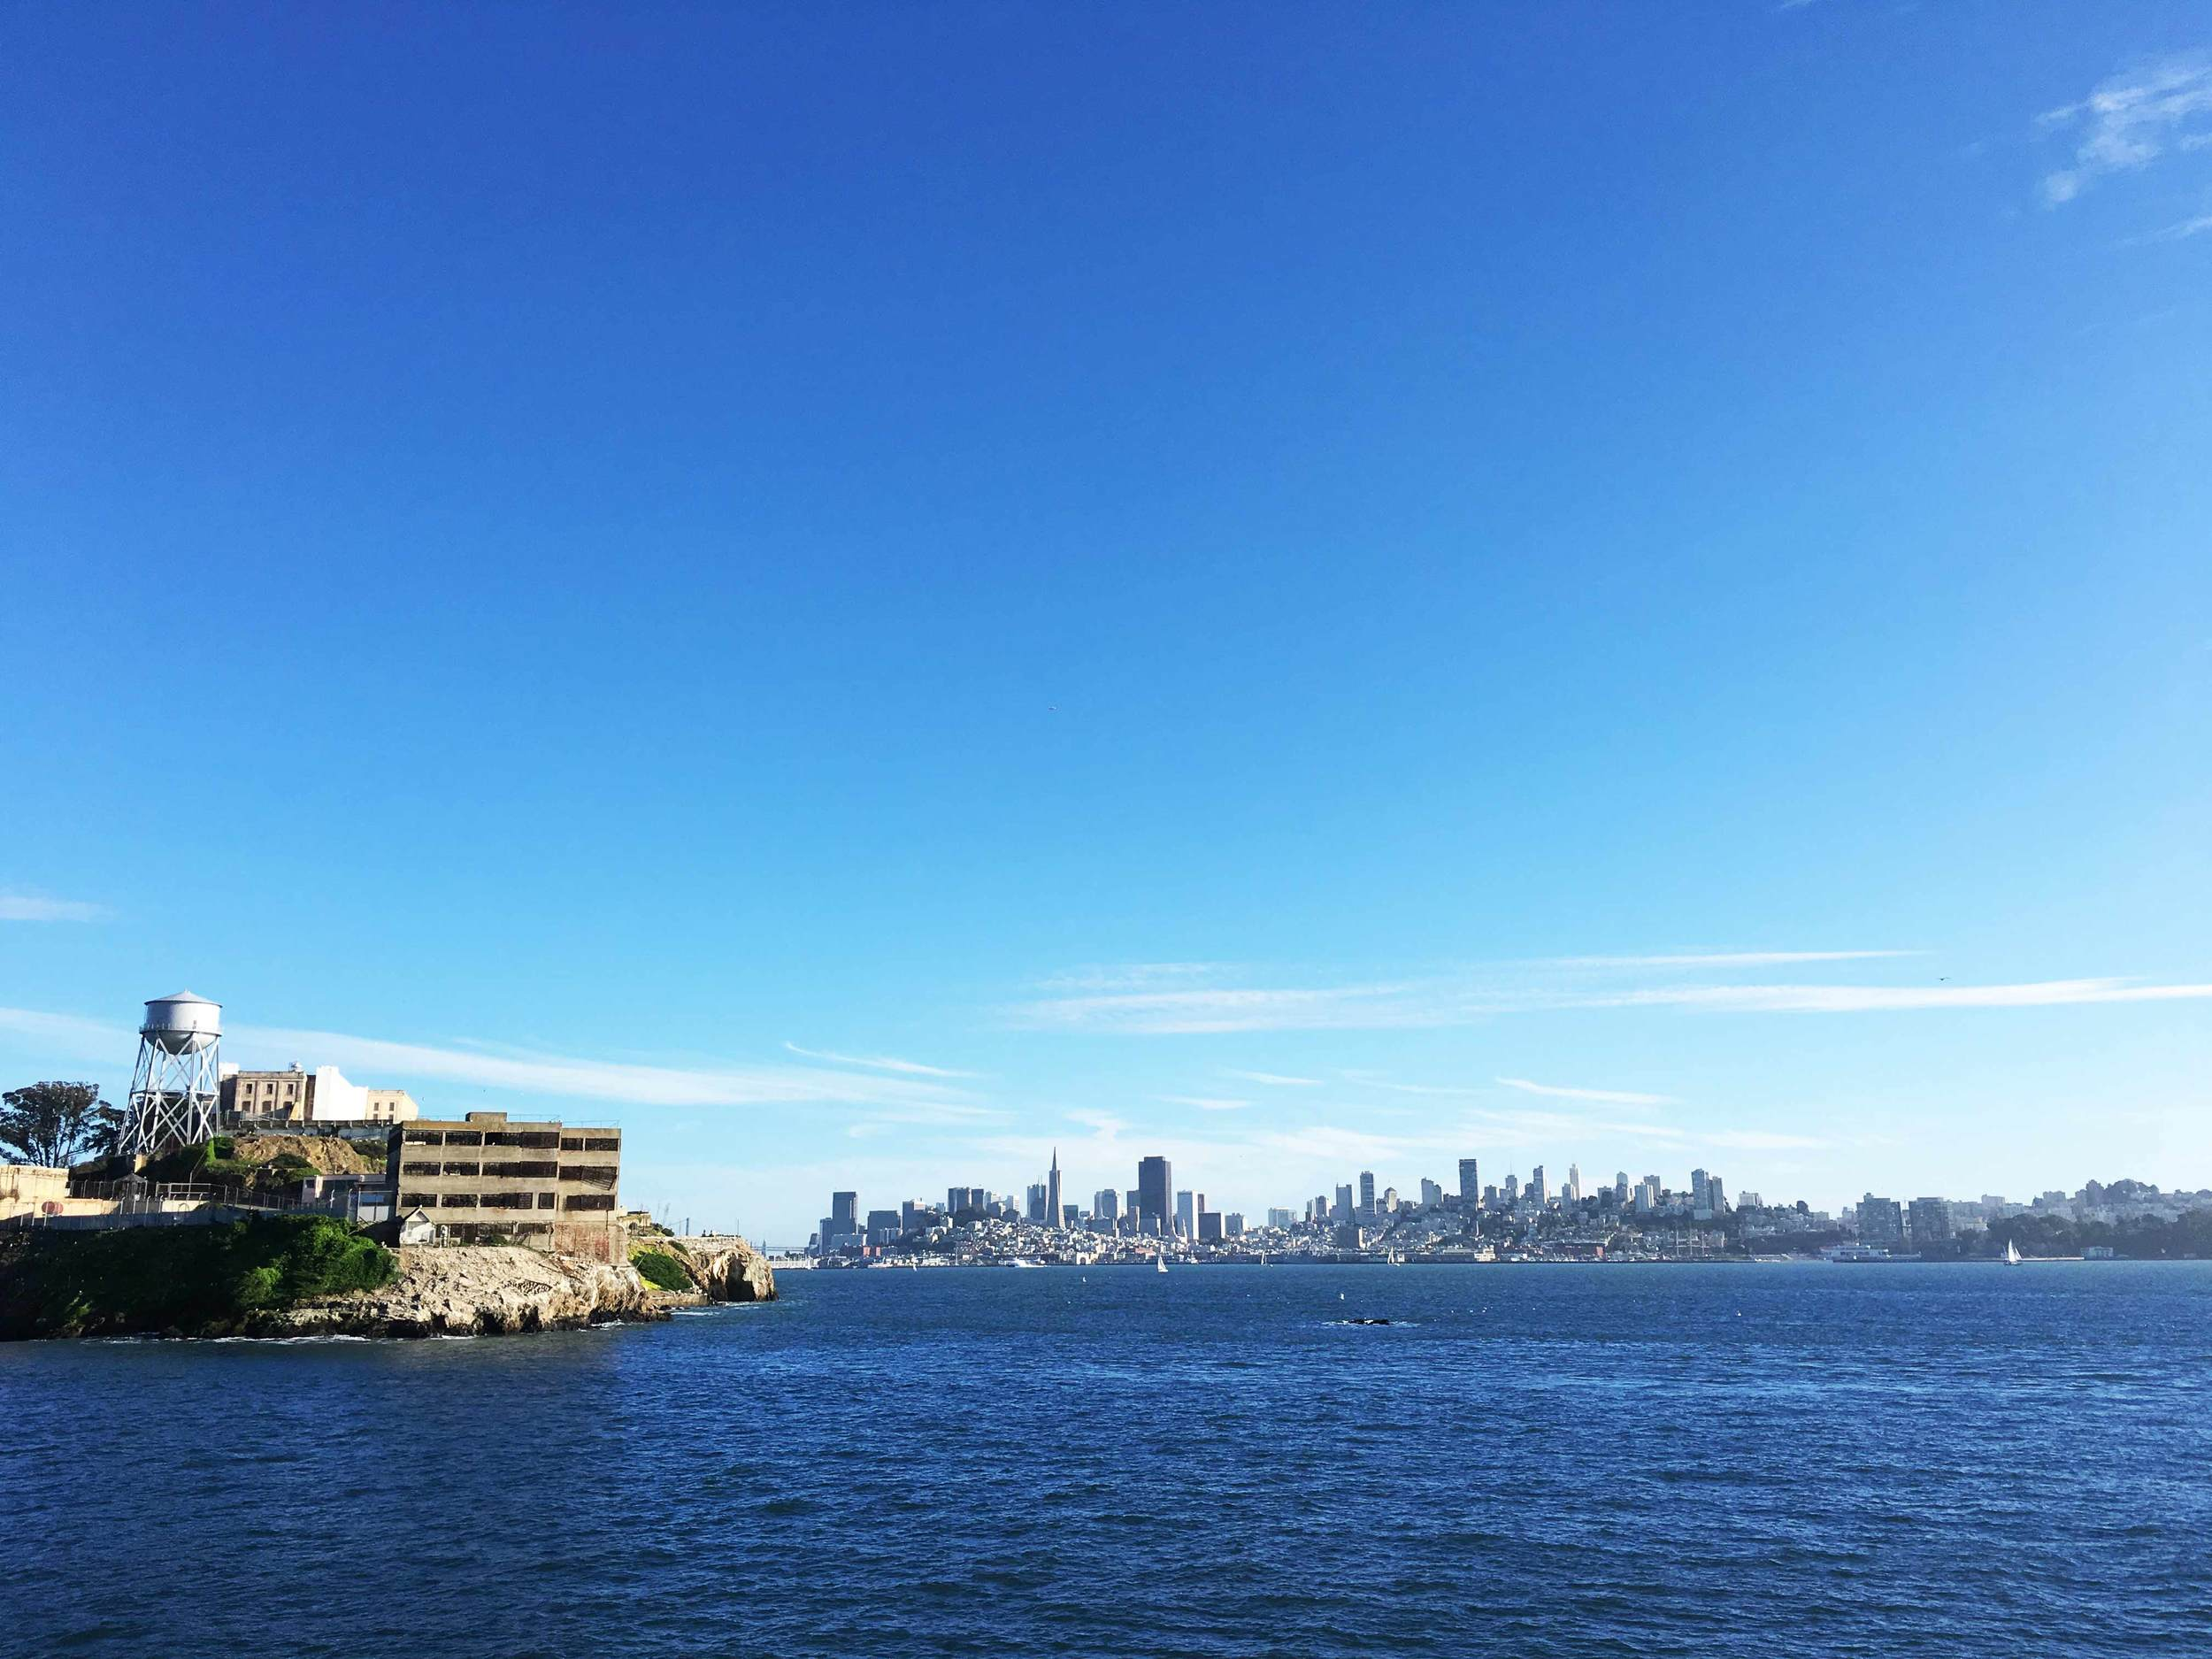 The back side of Alcatraz Island with SF in the background